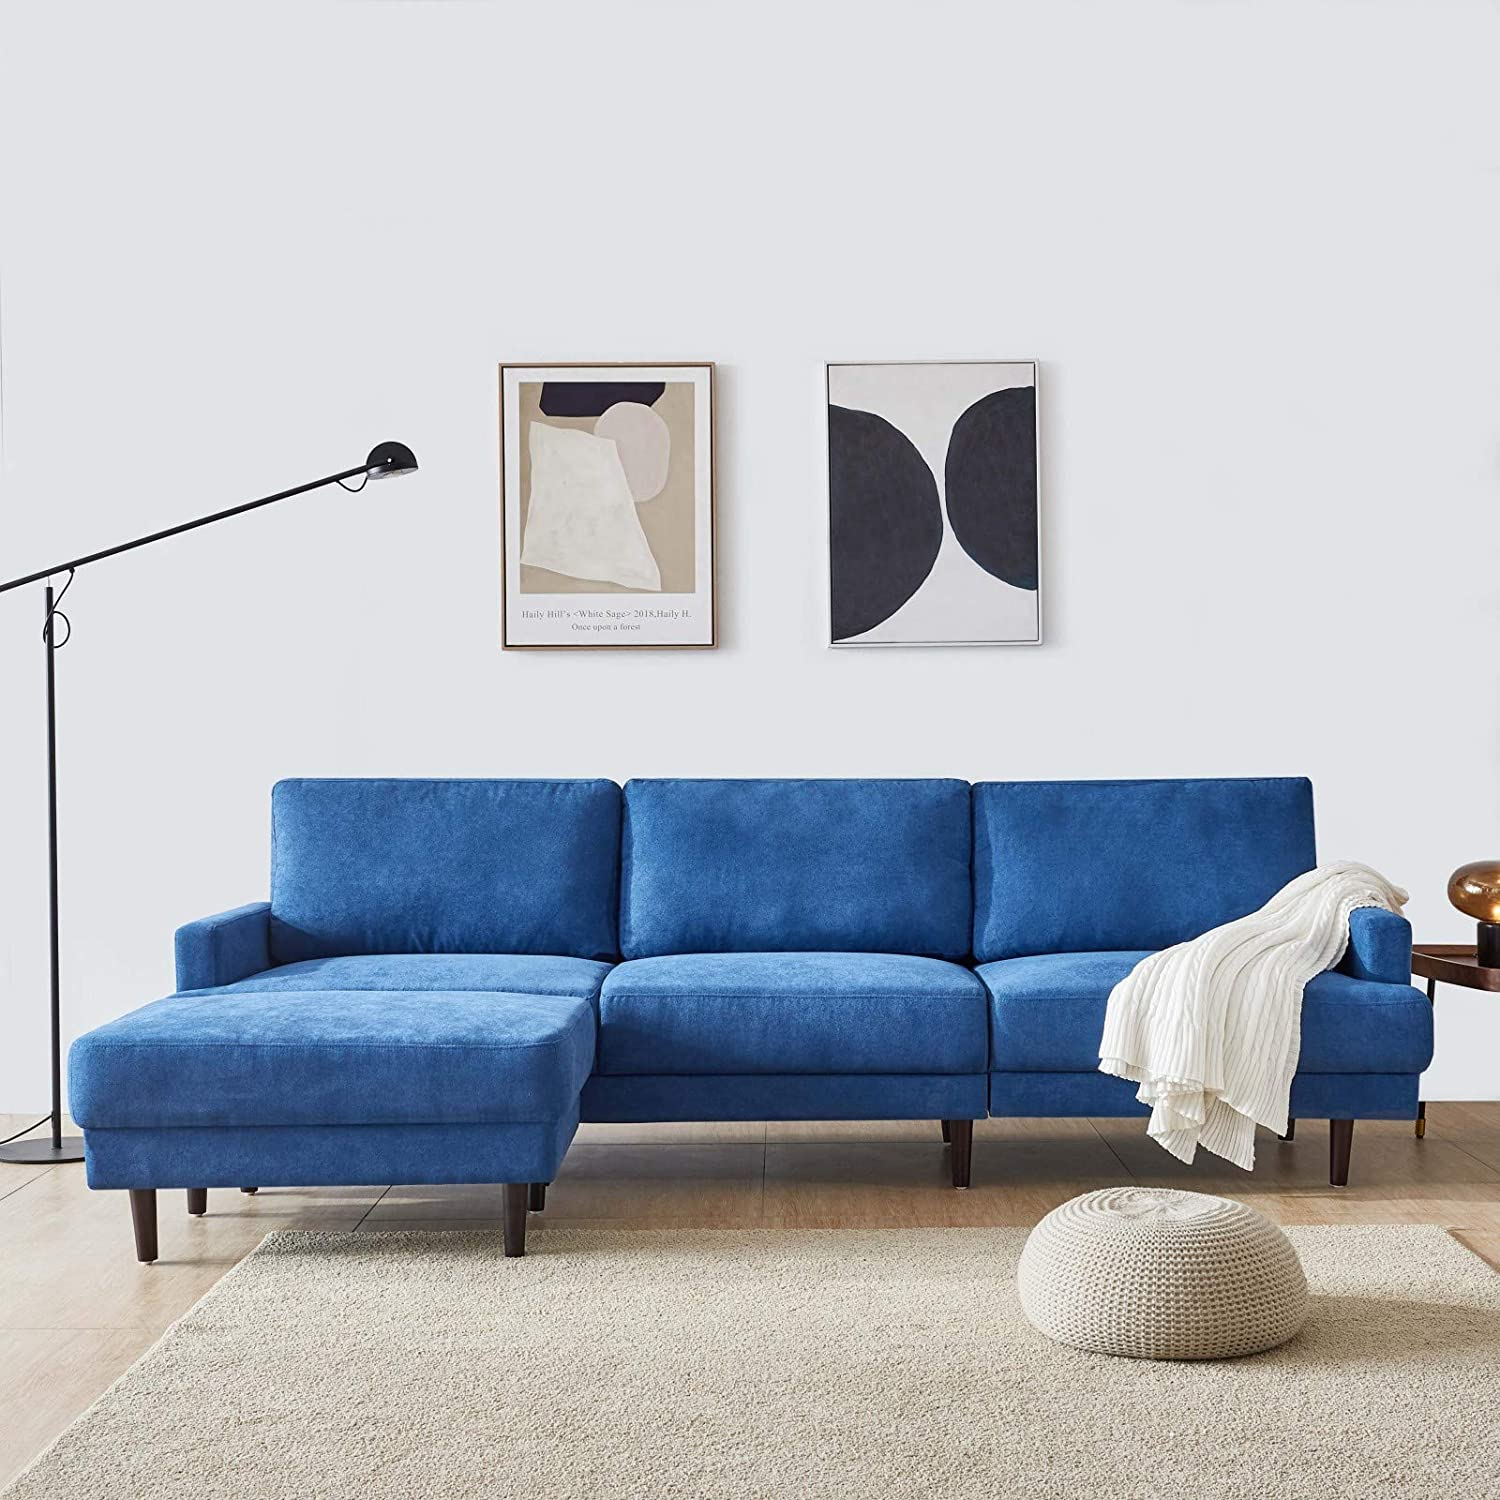 Takefuns Modern Fabric Sofa L Shape Free shipping on Regular dealer posting reviews ottoman-104 Seater 3 B with